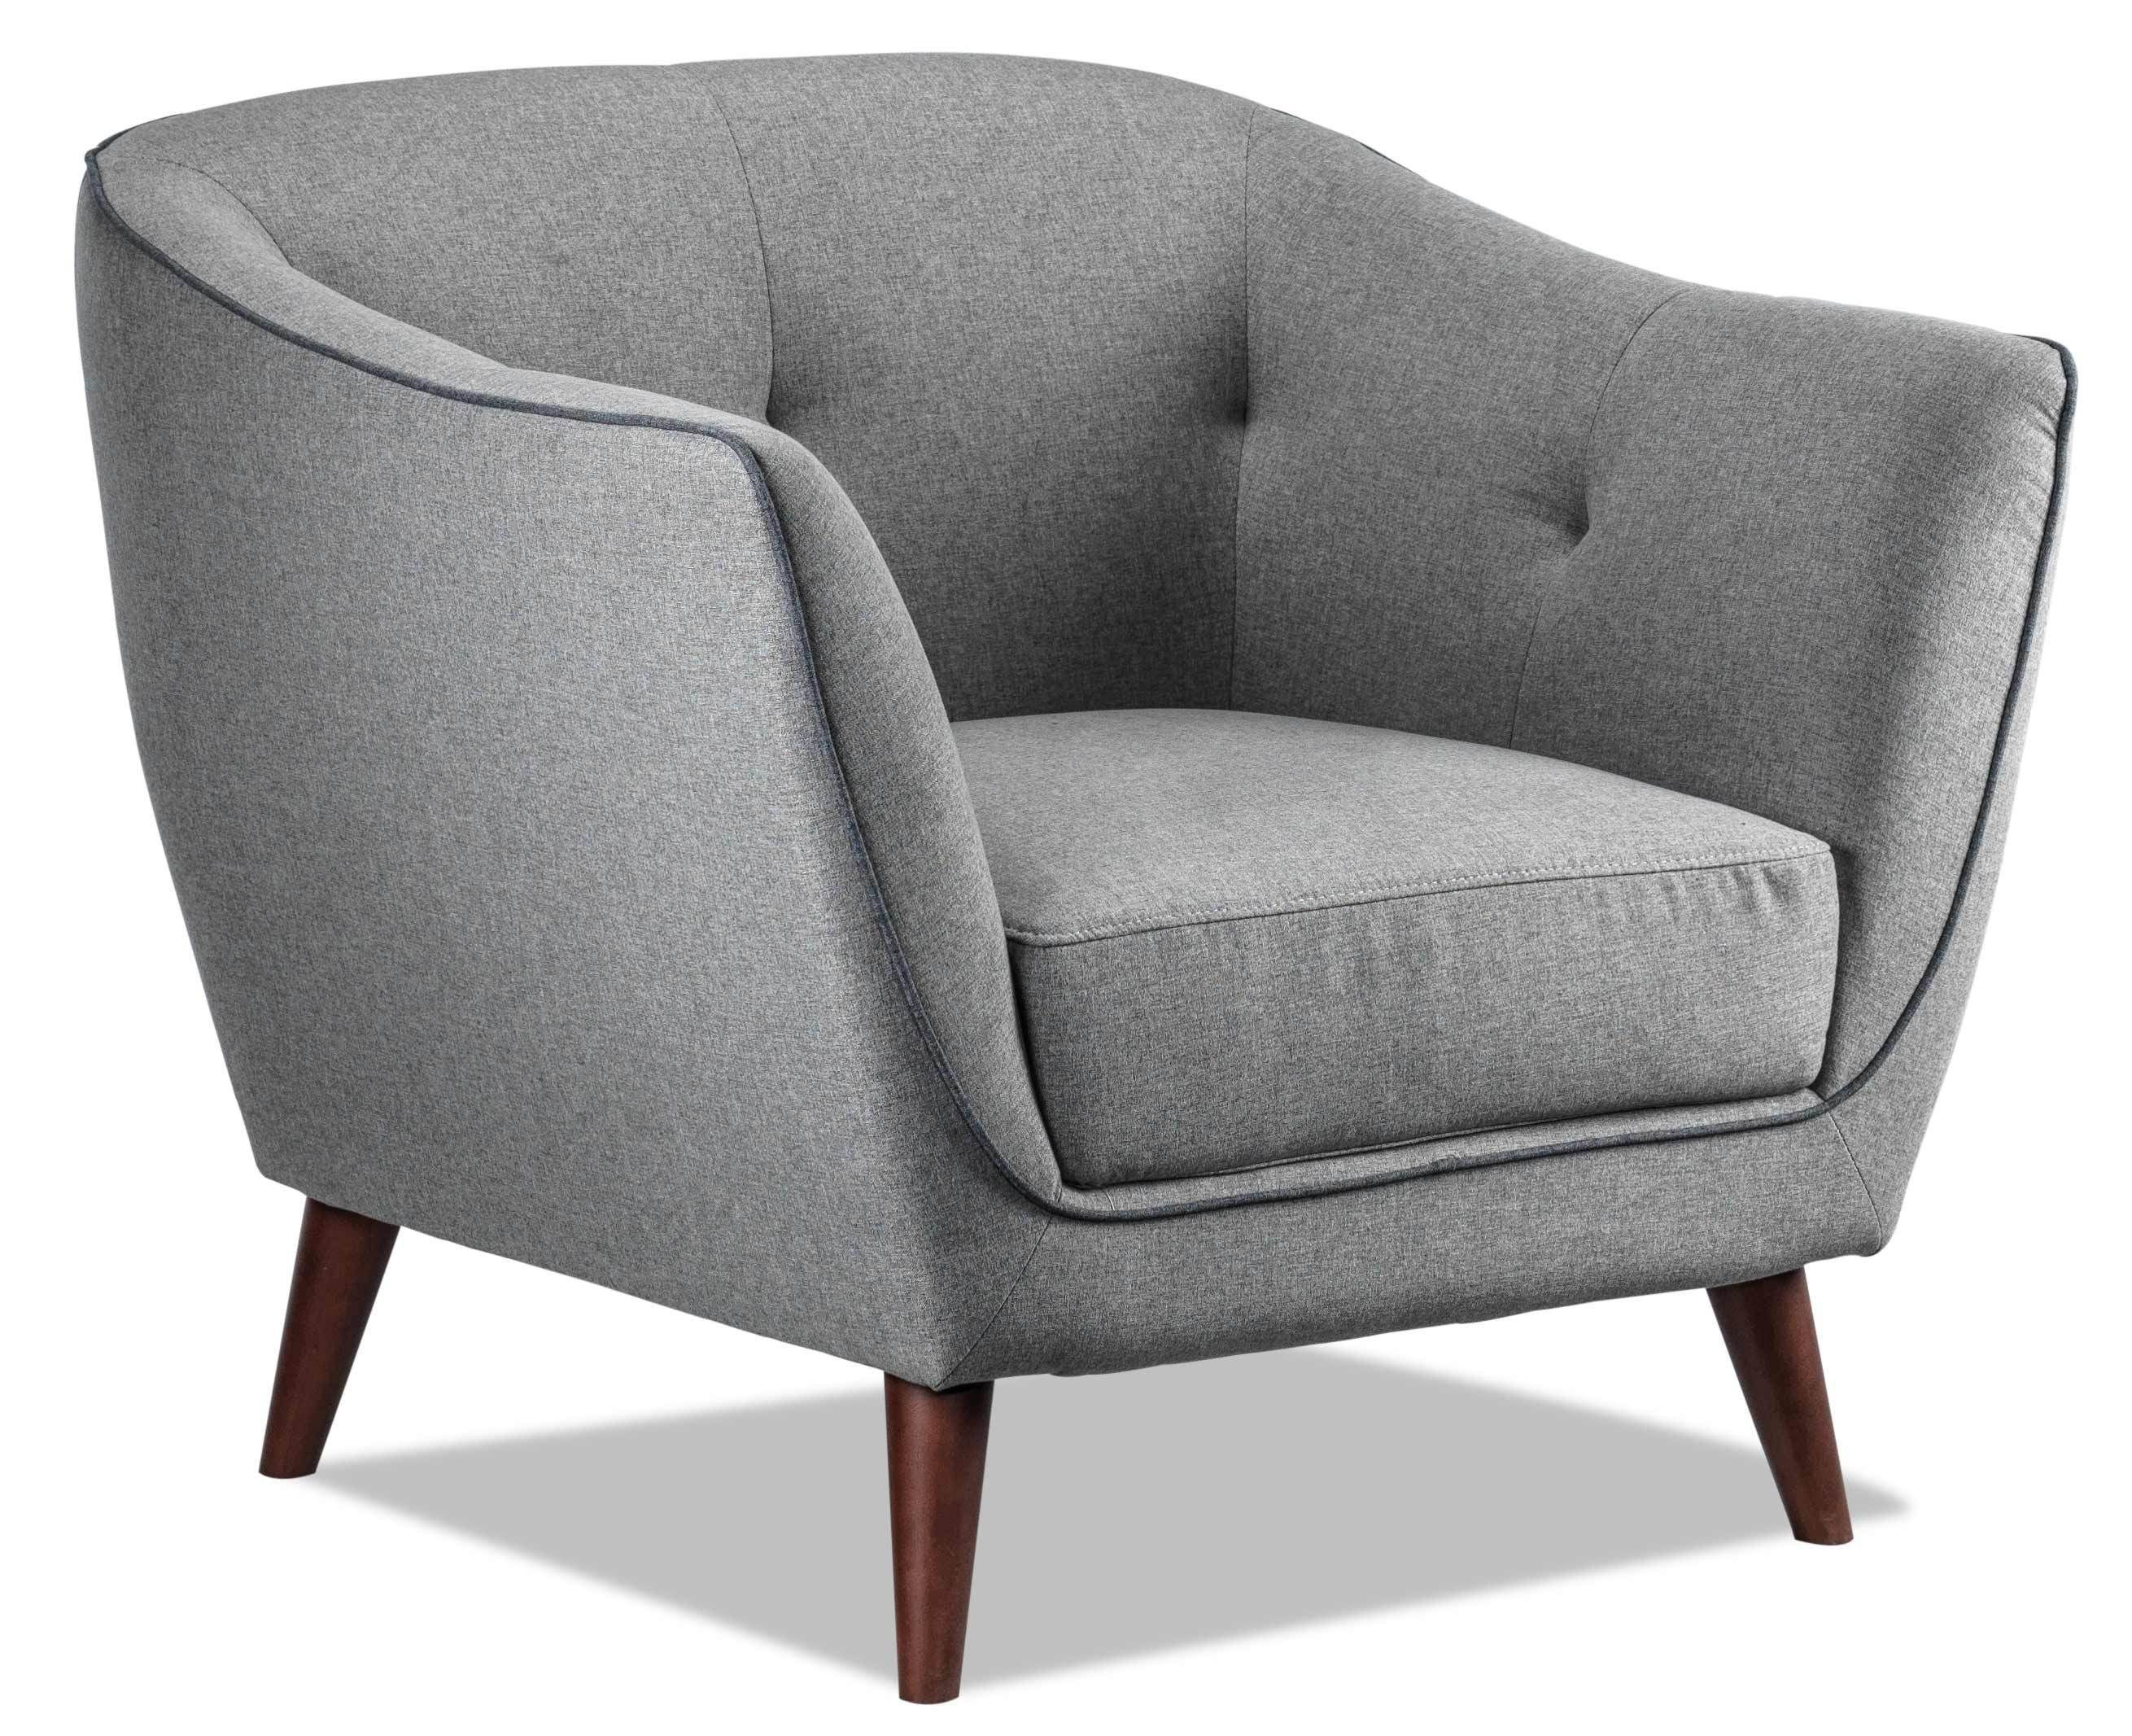 Ava Loveseat Light Grey In 2020 Accent Chairs For Living Room